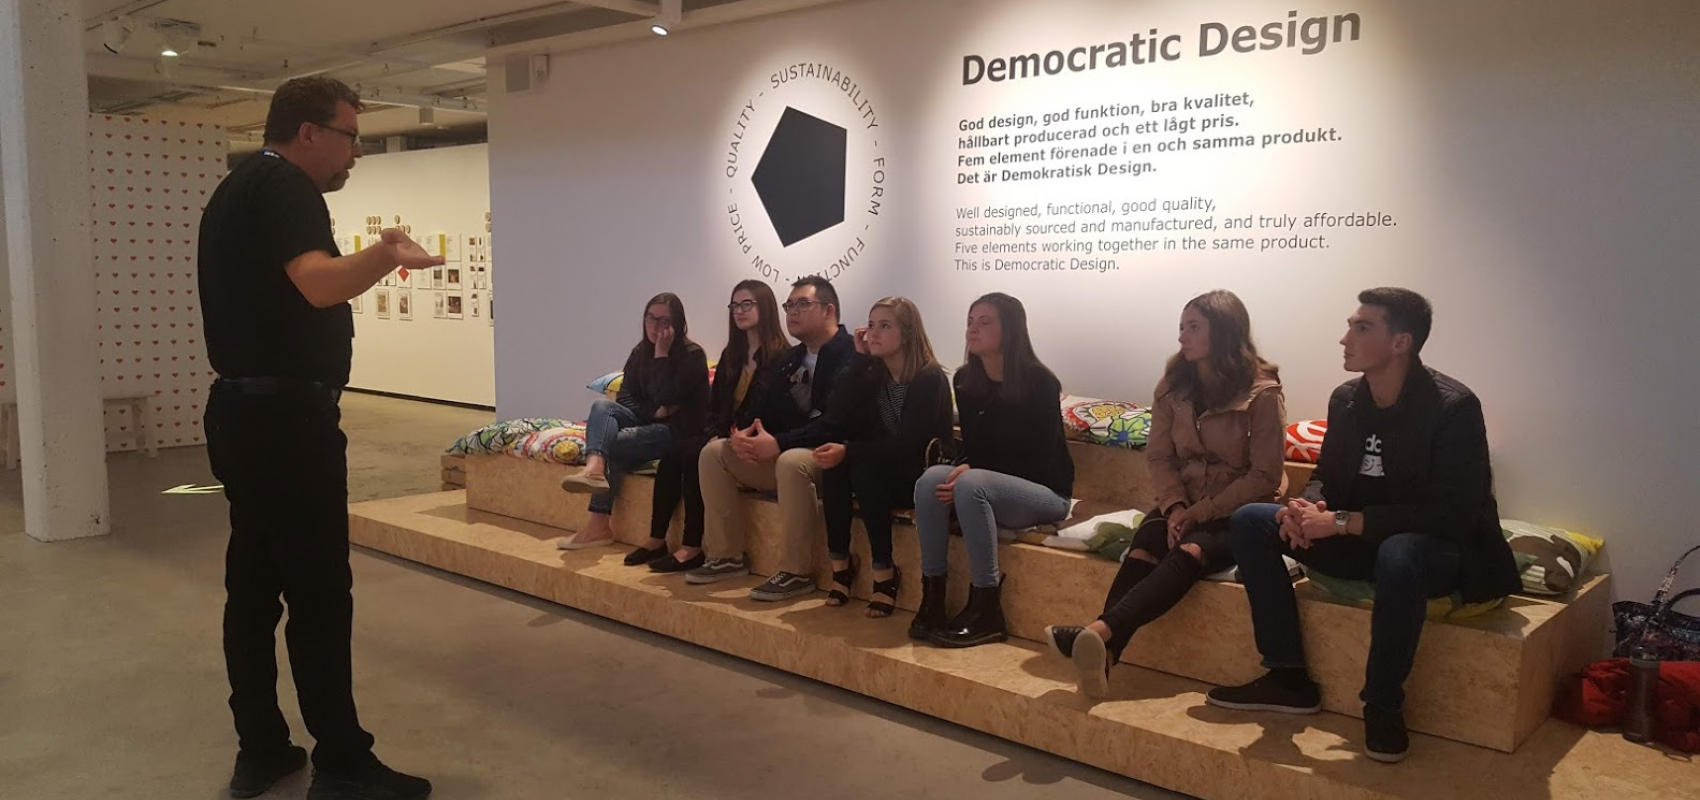 Group in front of a wall that explains democratic design